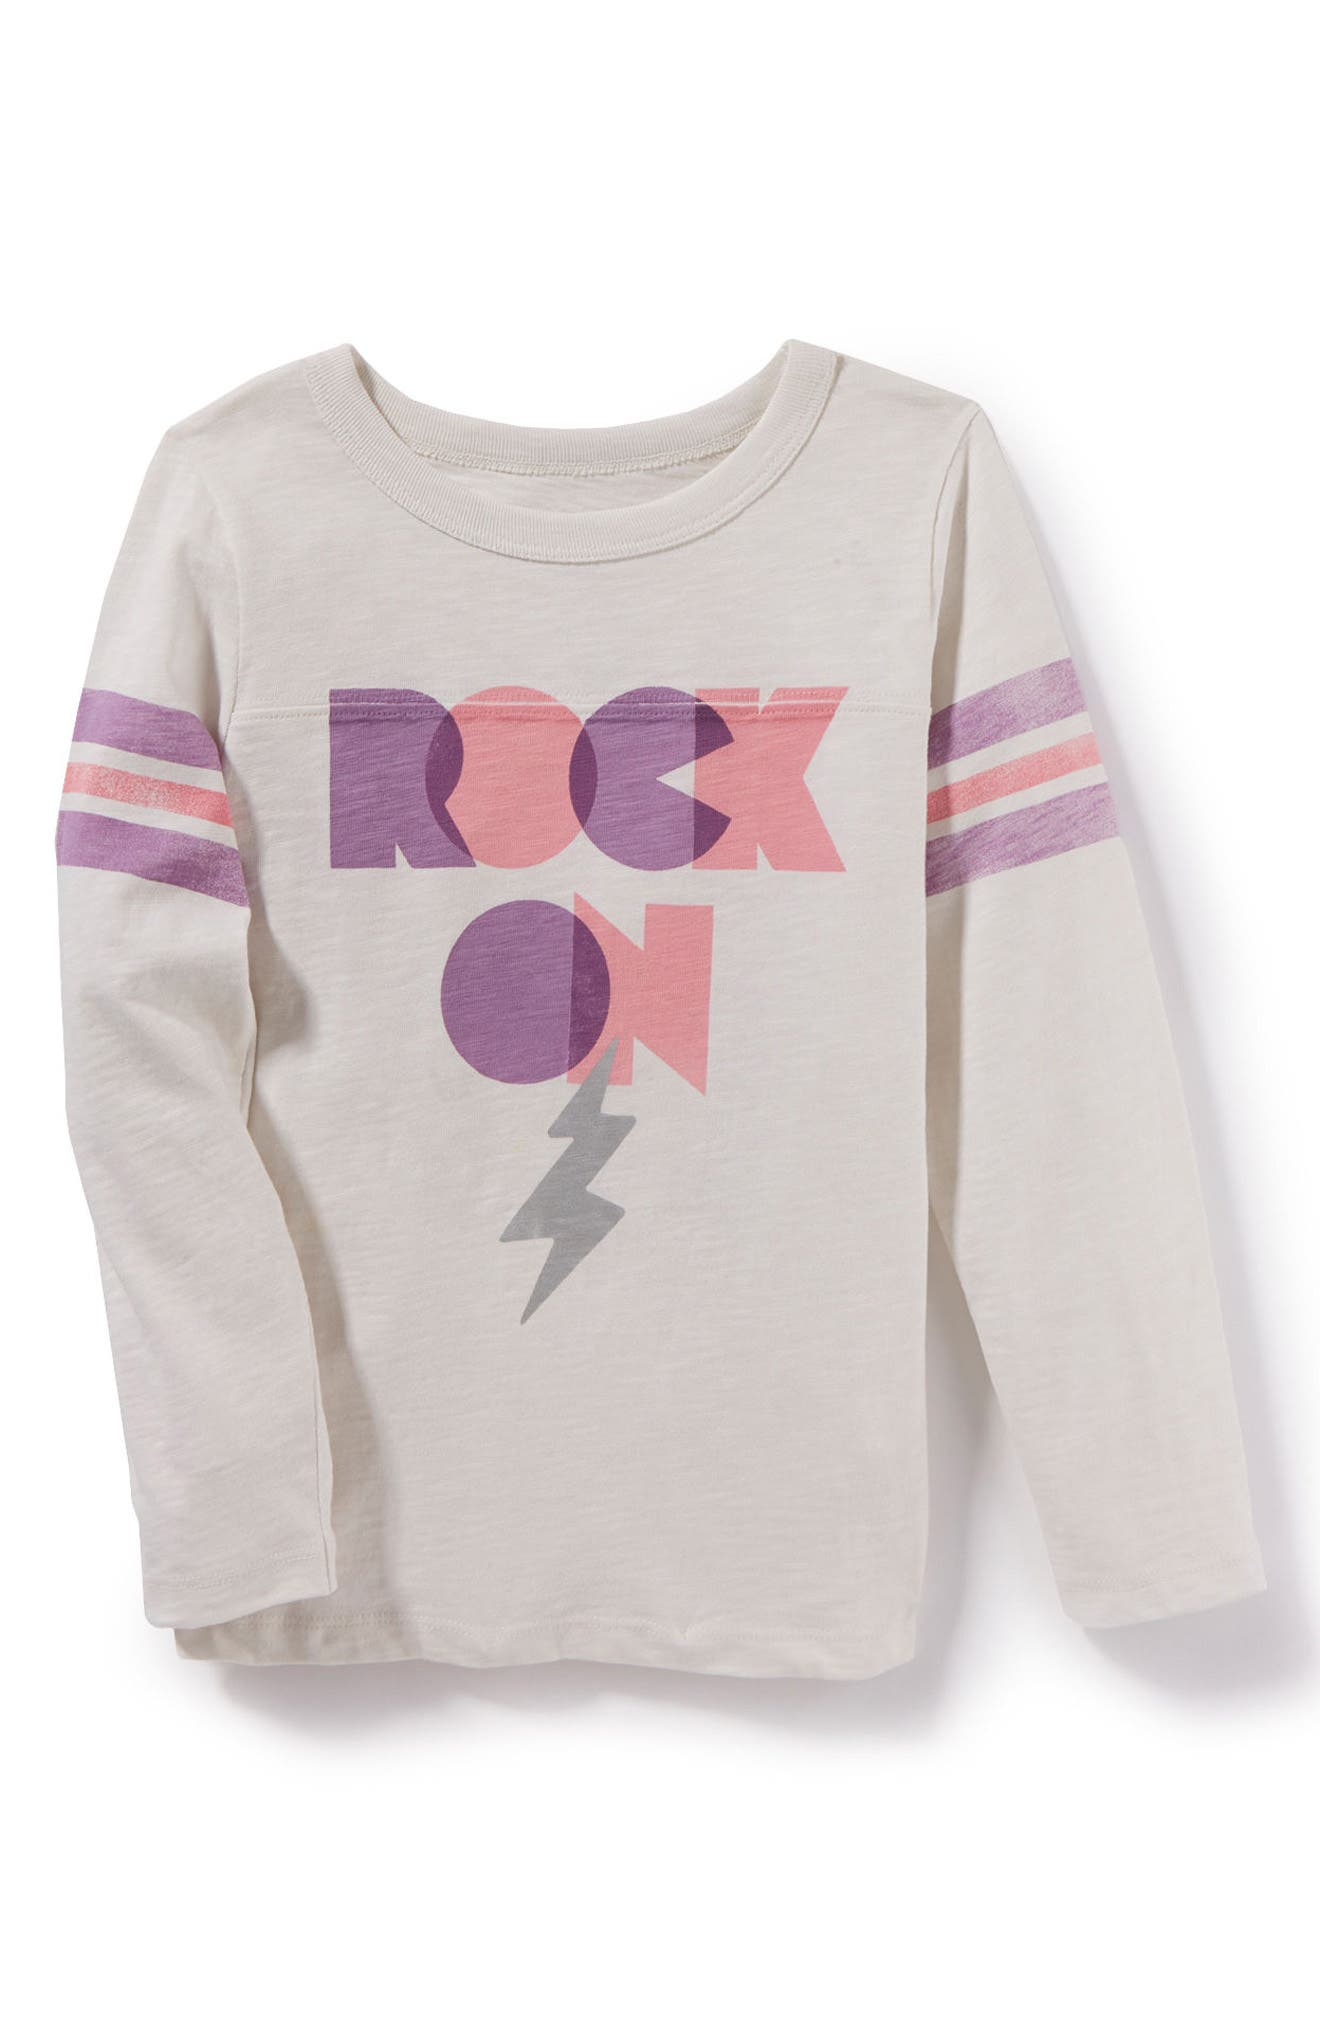 Rock On Graphic Tee,                             Main thumbnail 1, color,                             906